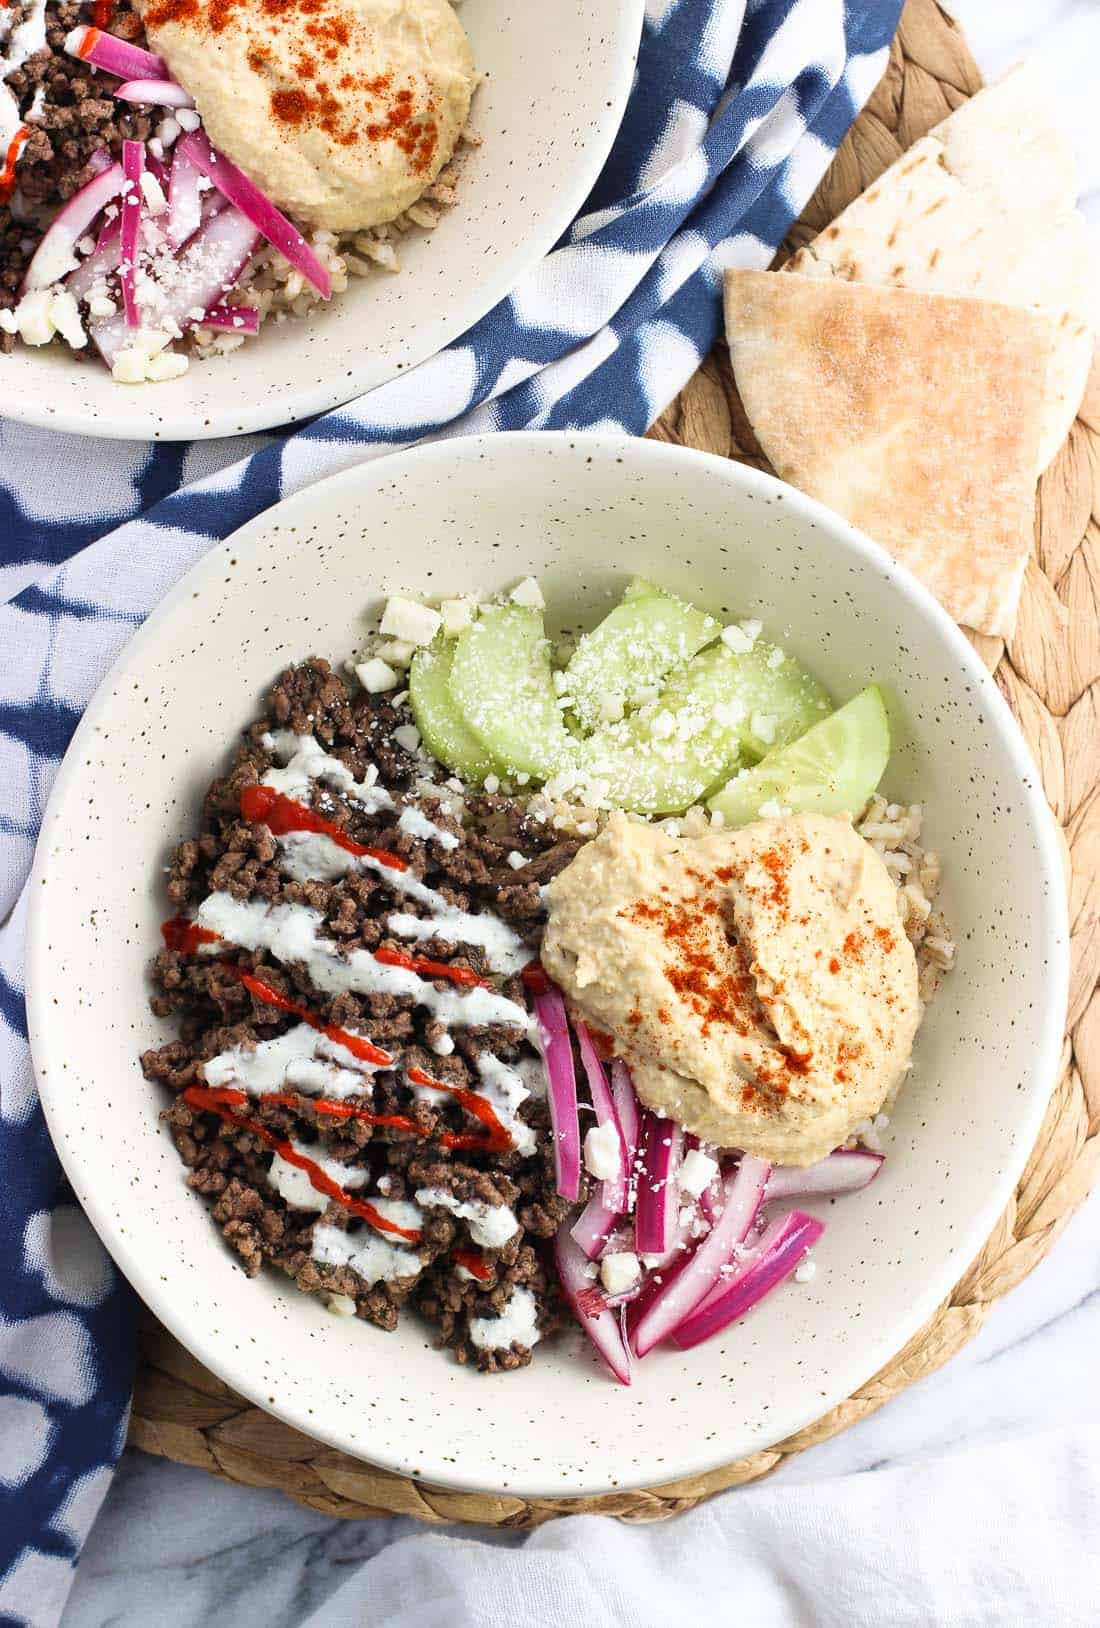 An overhead picture of a rice bowl featuring spiced beef, red onion, hummus, and cucumber slices